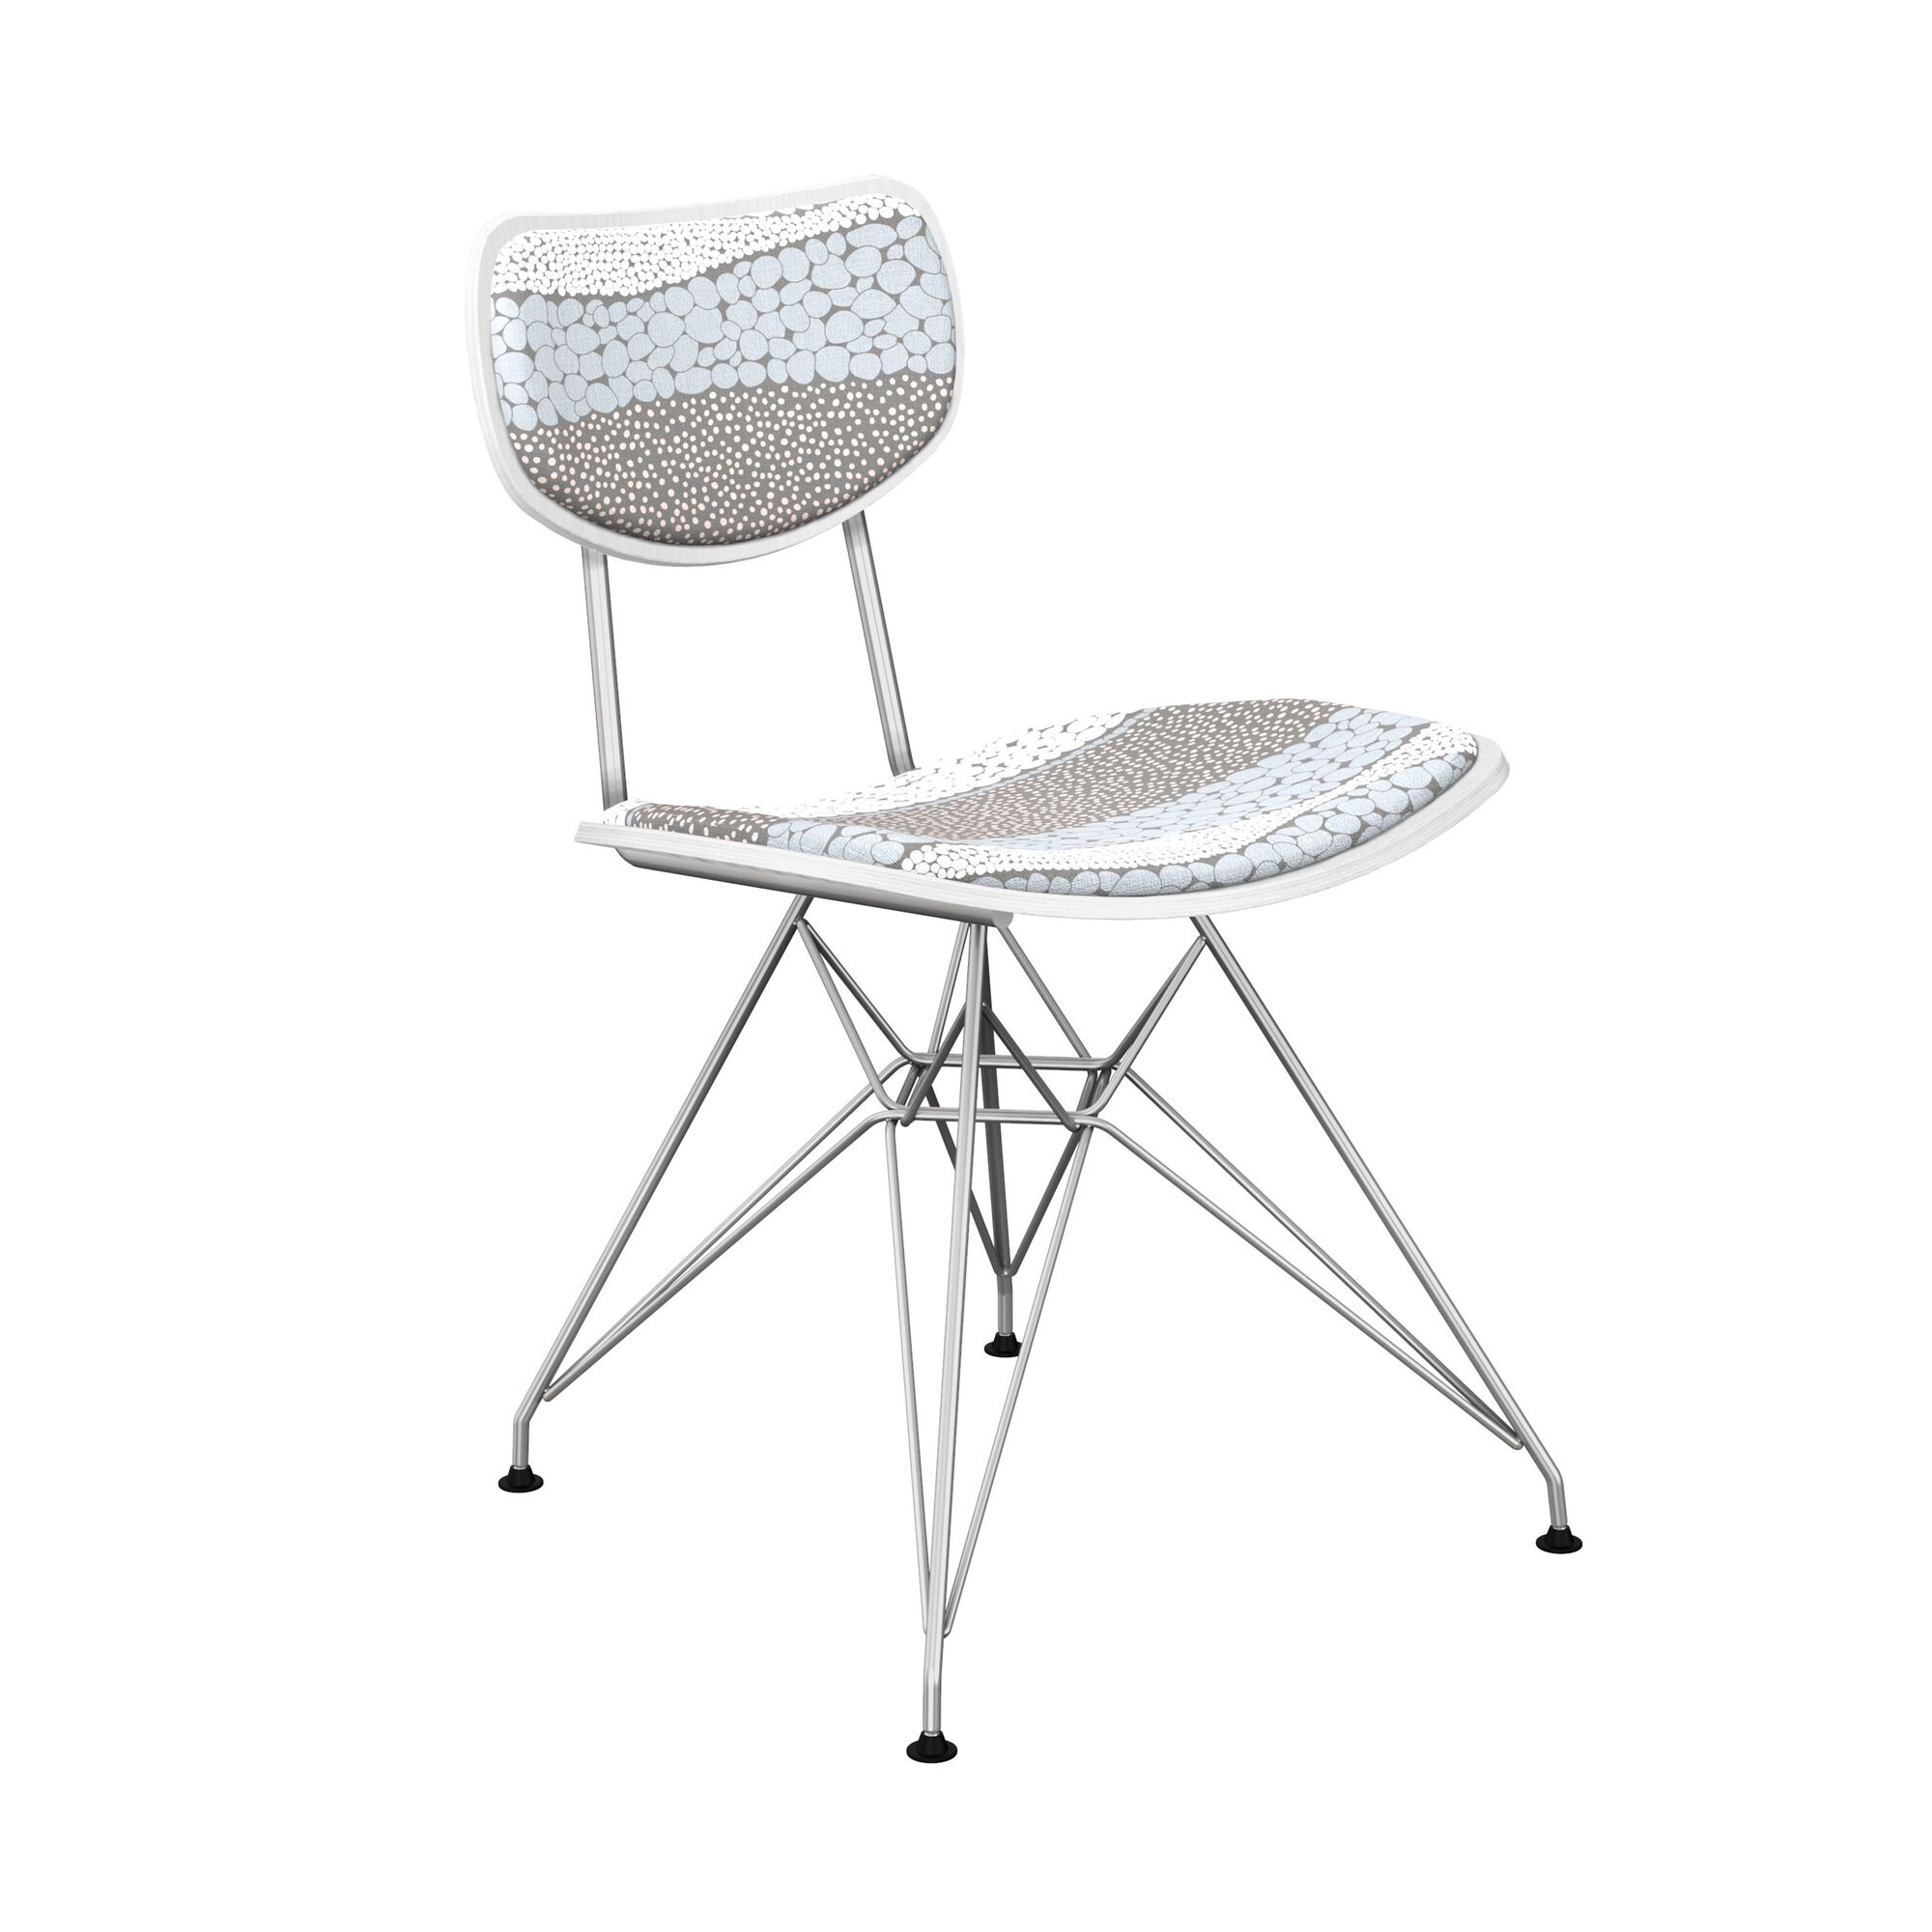 Crown Point Upholstered Dining Chair Leg Color: Chrome, Frame Color: White